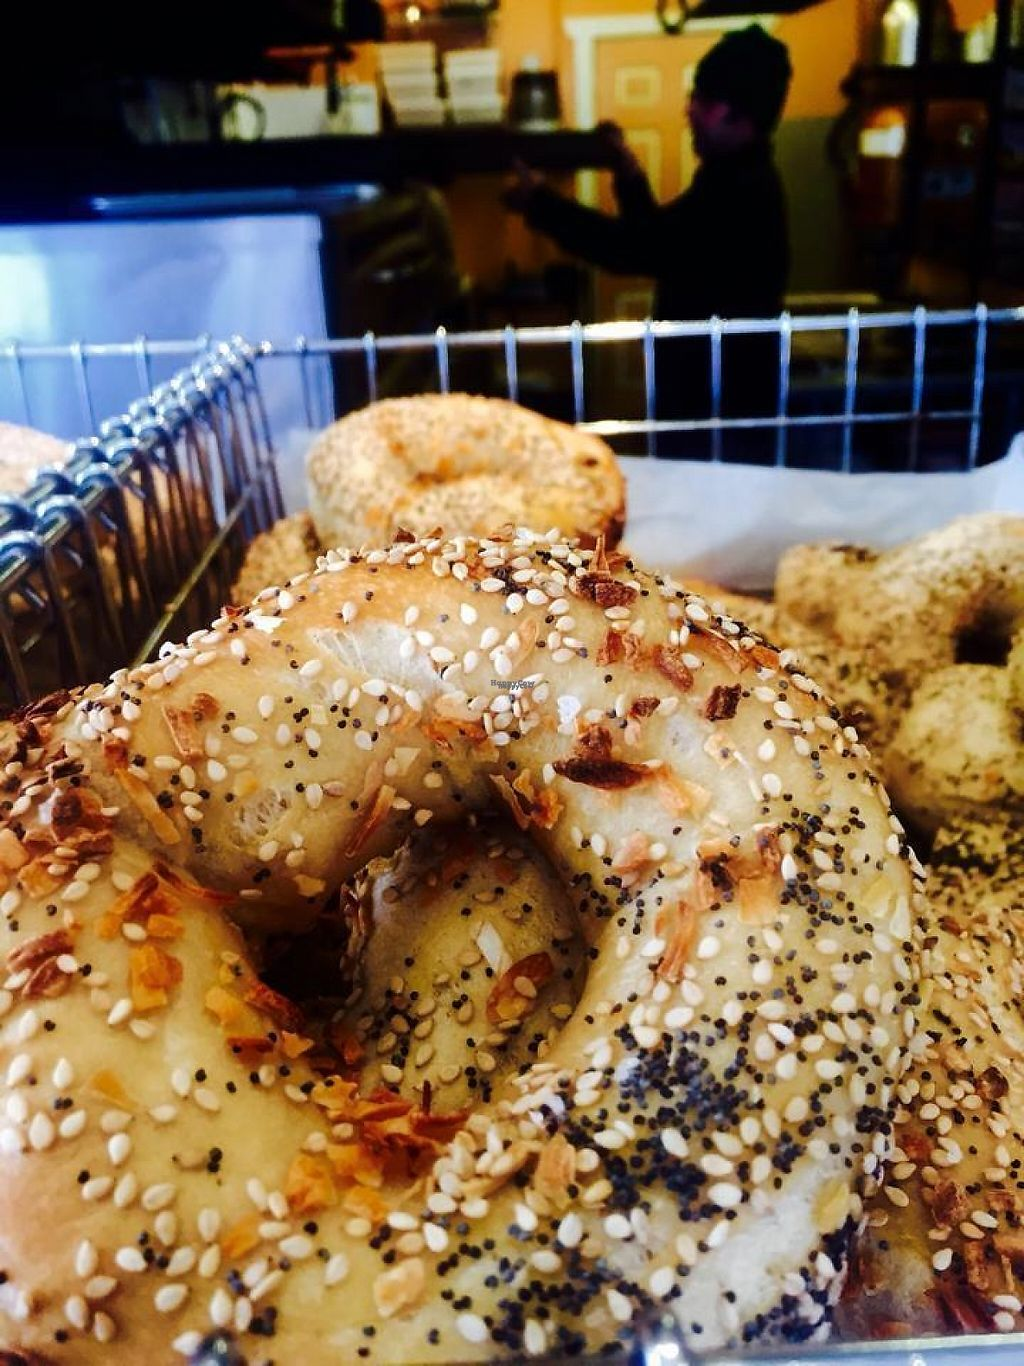 """Photo of Union Bagel Co.  by <a href=""""/members/profile/mollykatherine"""">mollykatherine</a> <br/>photo of the bagels from Union Bagel's Facebook page <br/> March 24, 2017  - <a href='/contact/abuse/image/88235/240074'>Report</a>"""